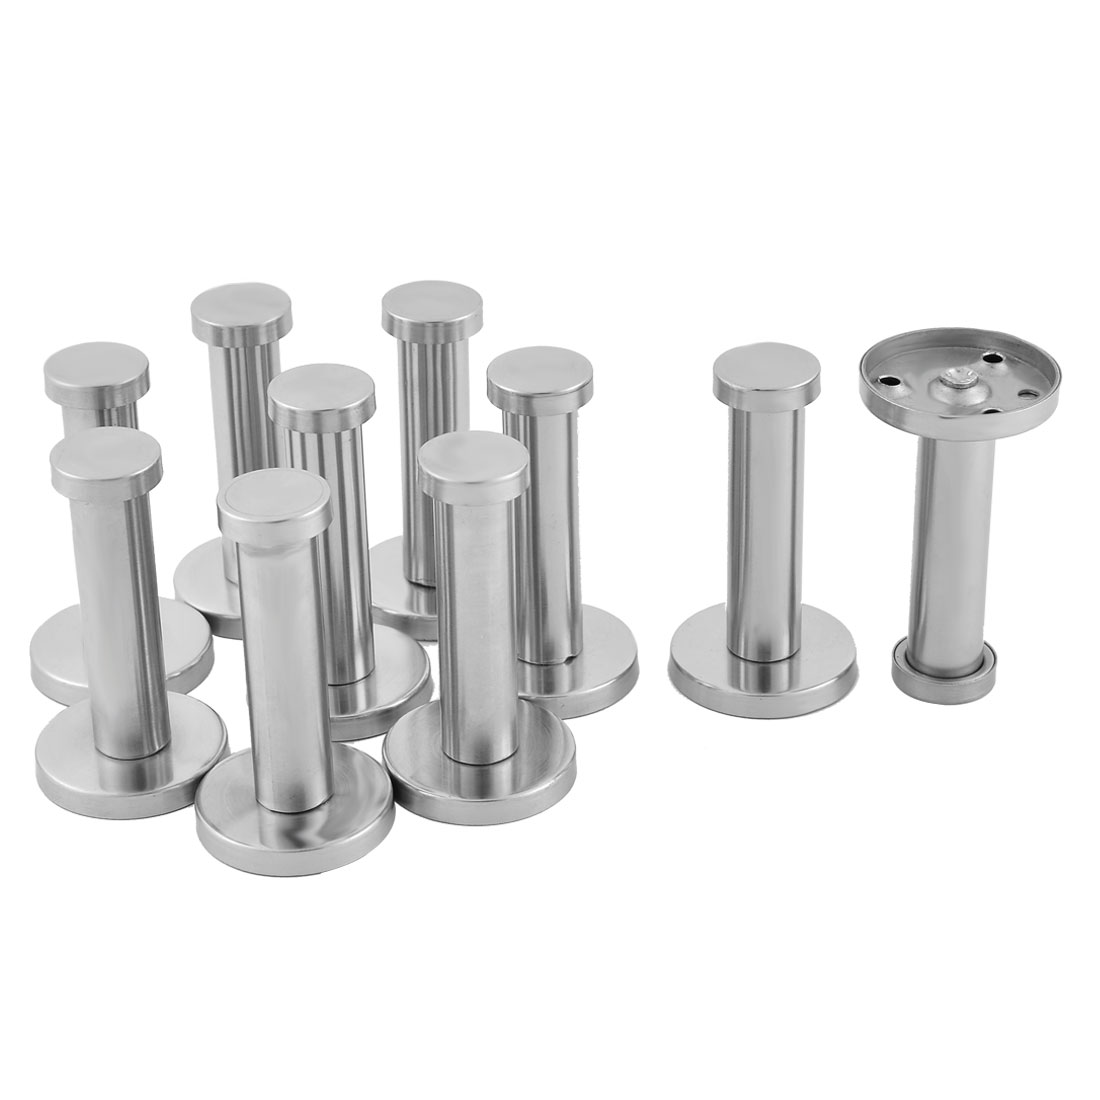 10pcs Stainless Steel Round Wall Mount Clothes Hat Robe Towel Coat Hanger Hook